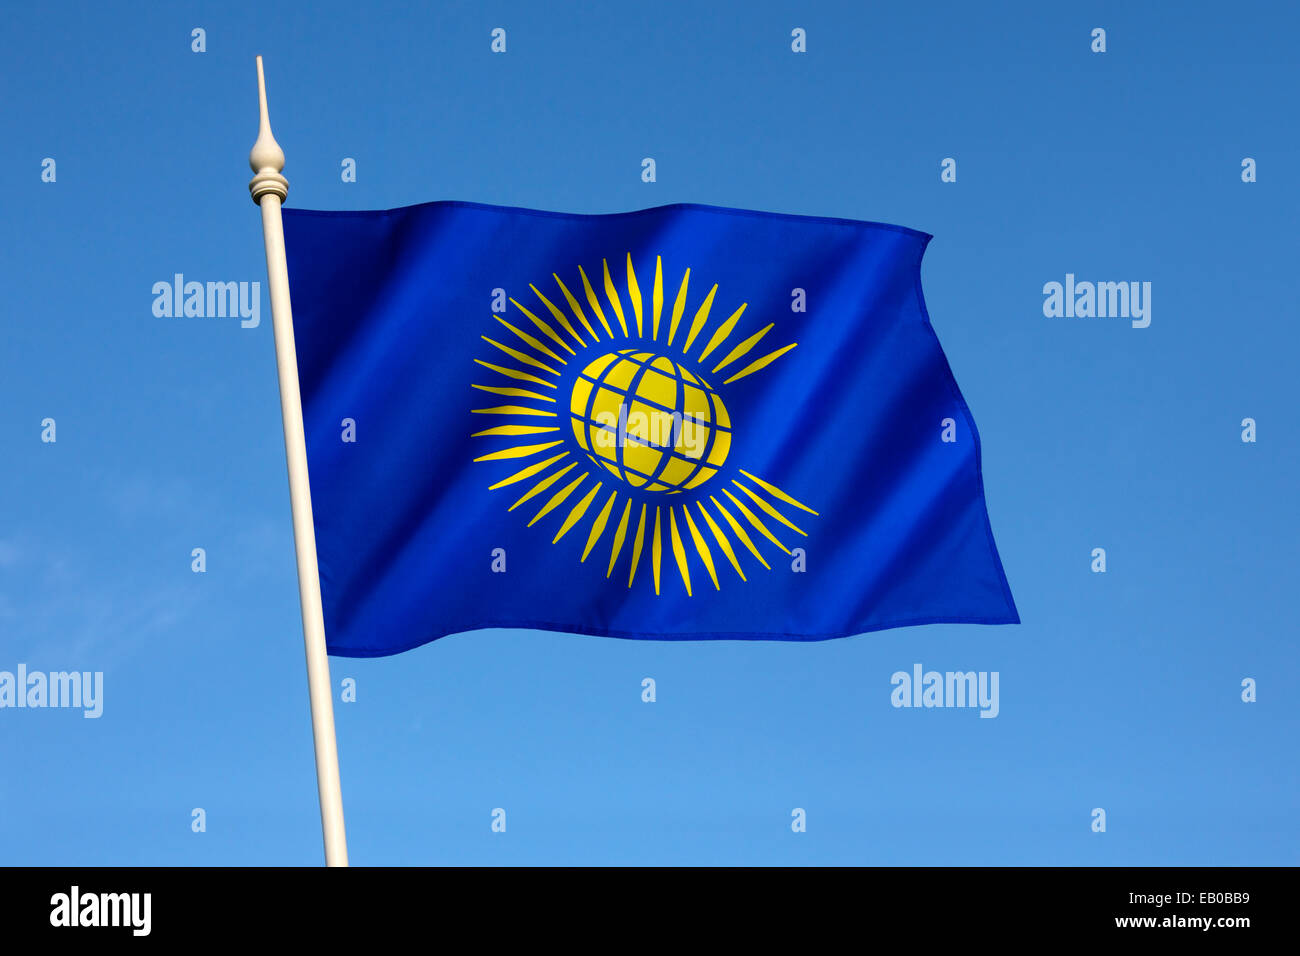 Flag of the Commonwealth of Nations - adopted in November 2013. - Stock Image